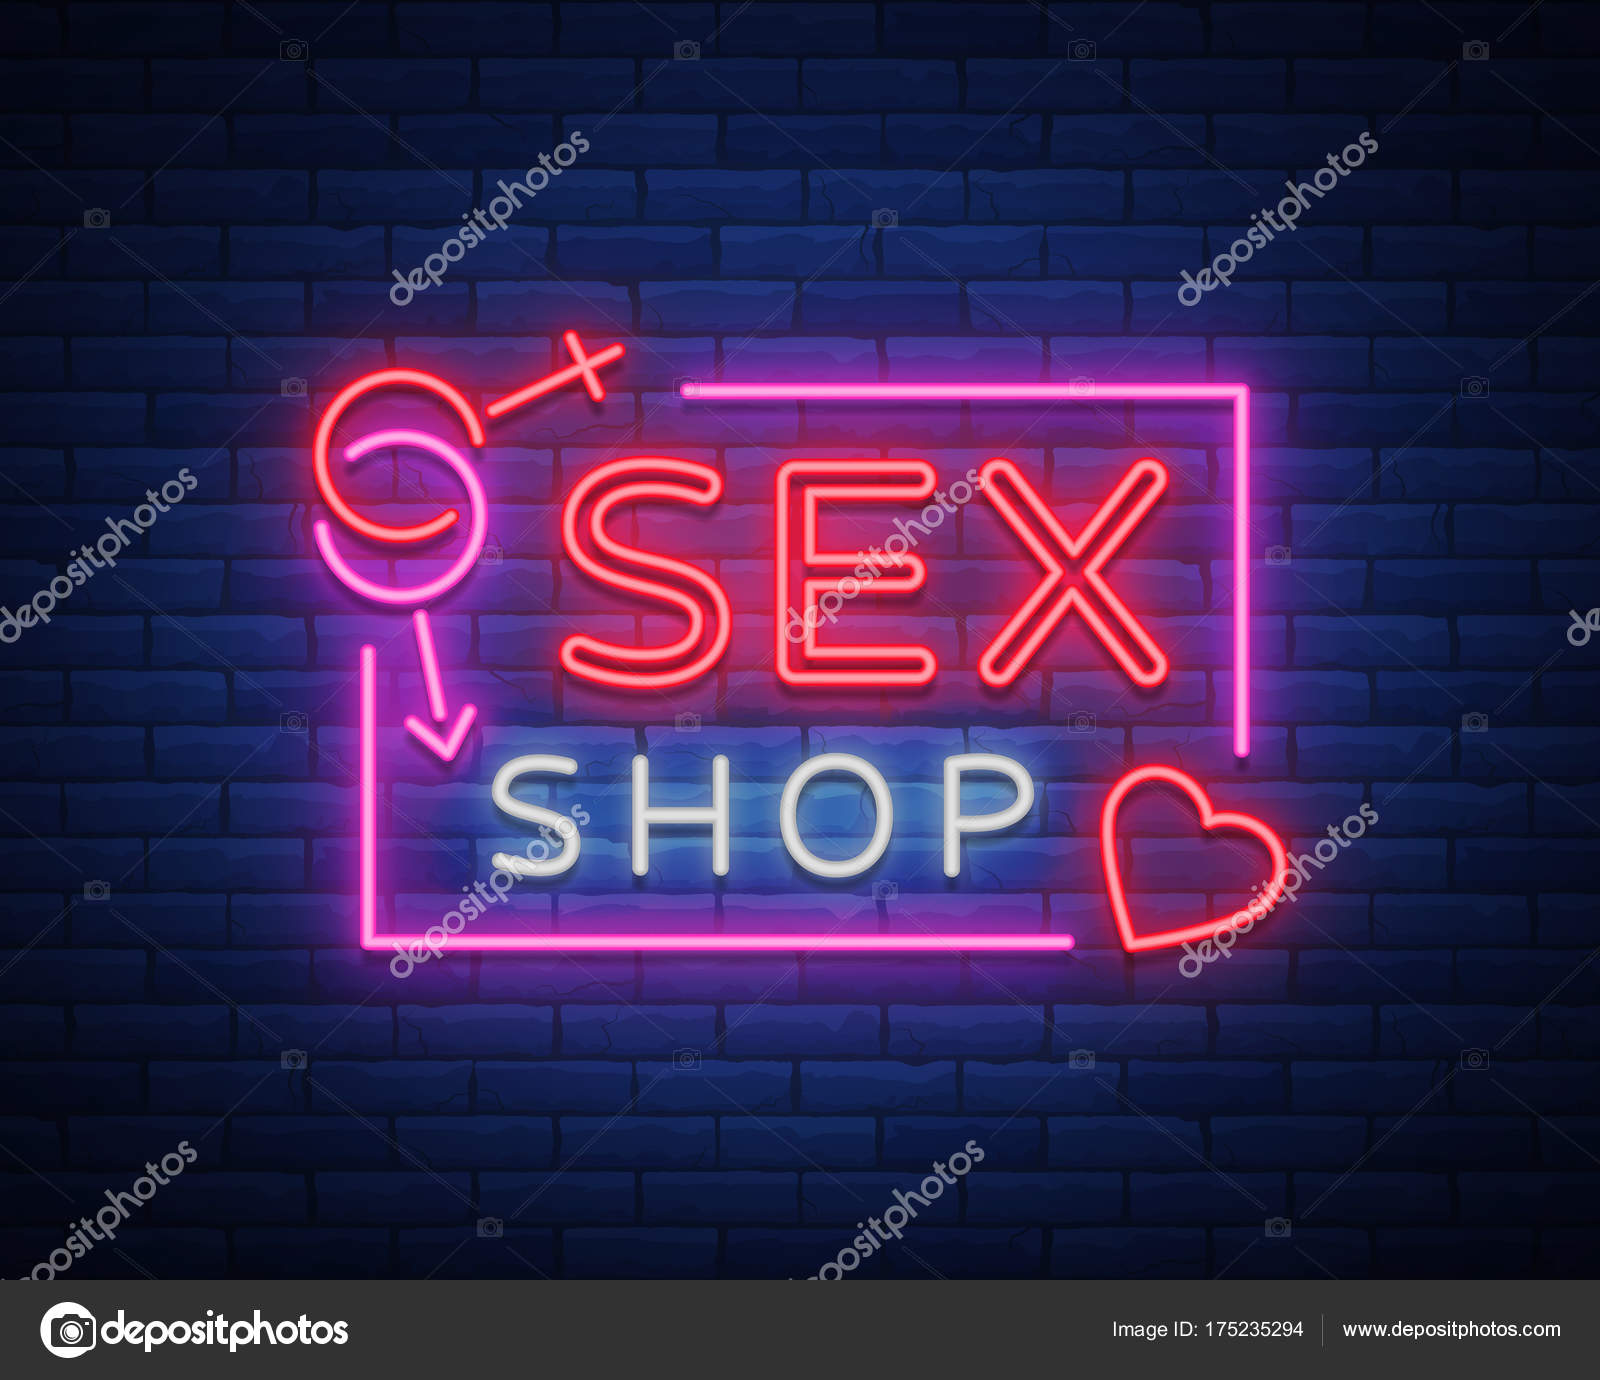 Sex shop logo night sign in neon style neon sign a symbol for sex shop logo night sign in neon style neon sign a symbol for sex shop promotion adult store bright banner nightly advertising vector illustration biocorpaavc